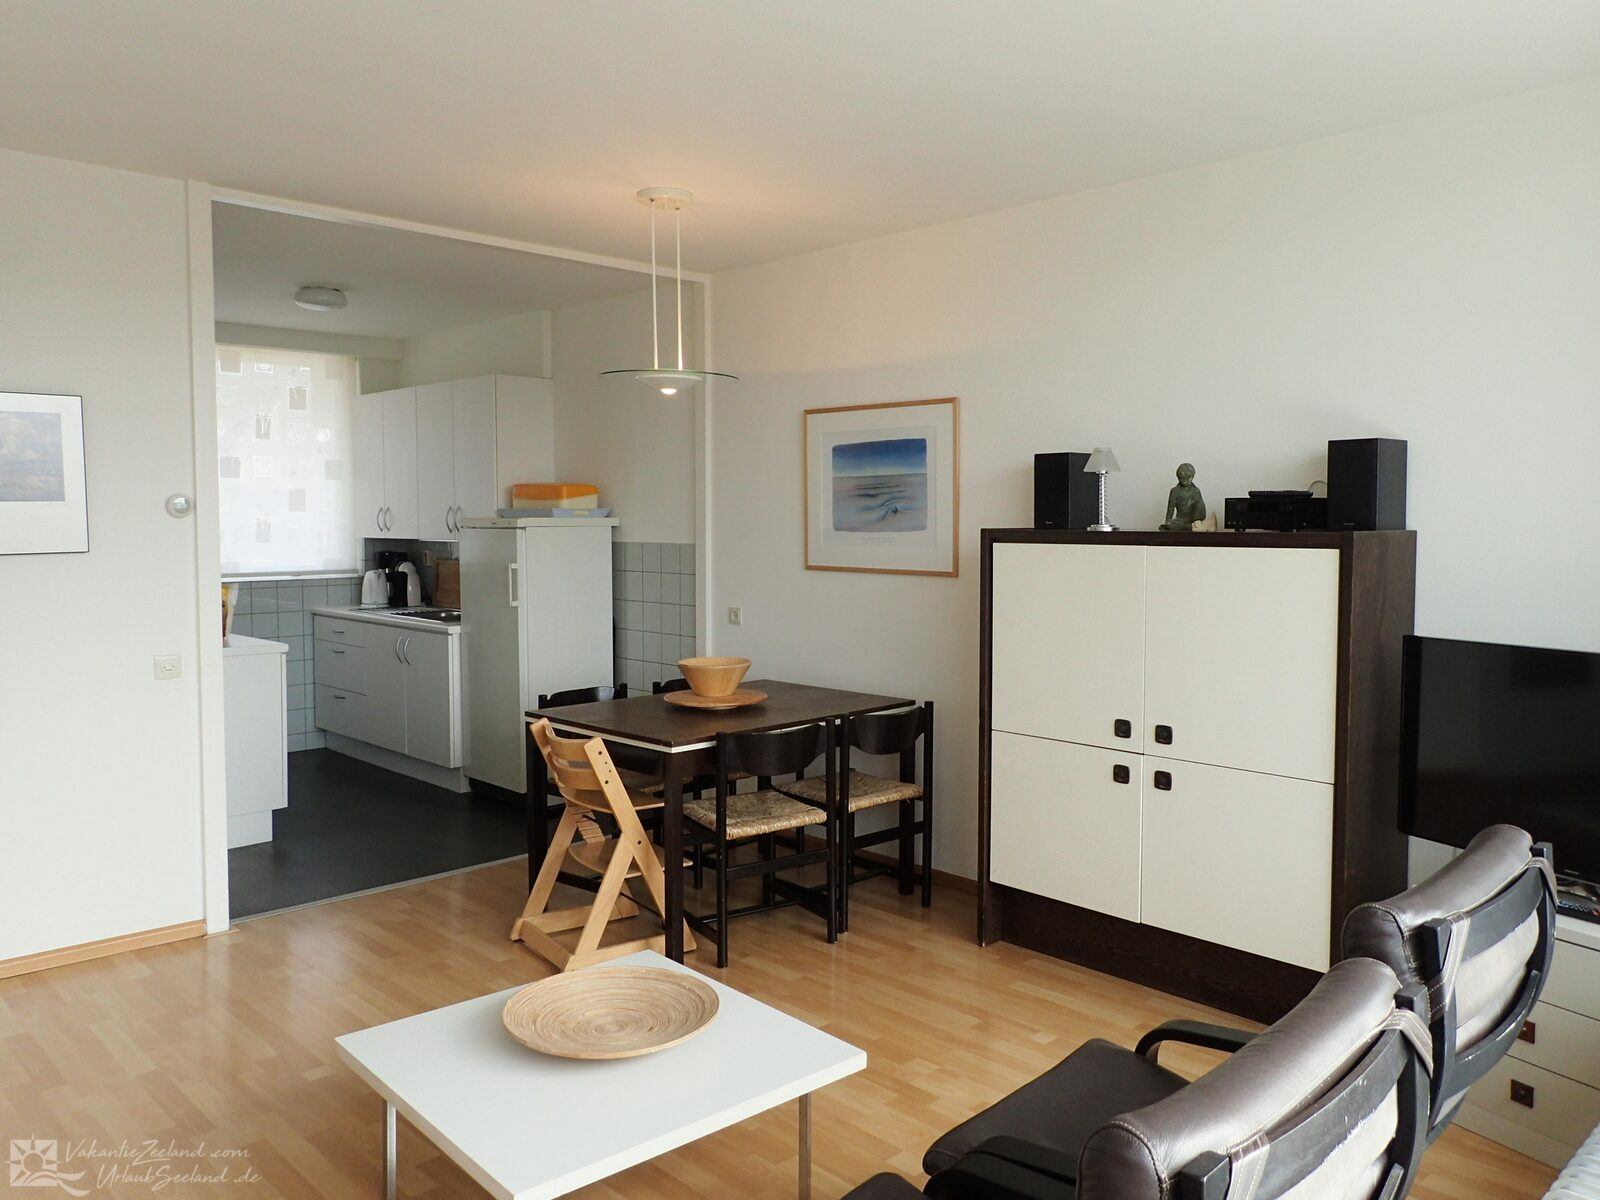 VZ922 apartment in Cadzand